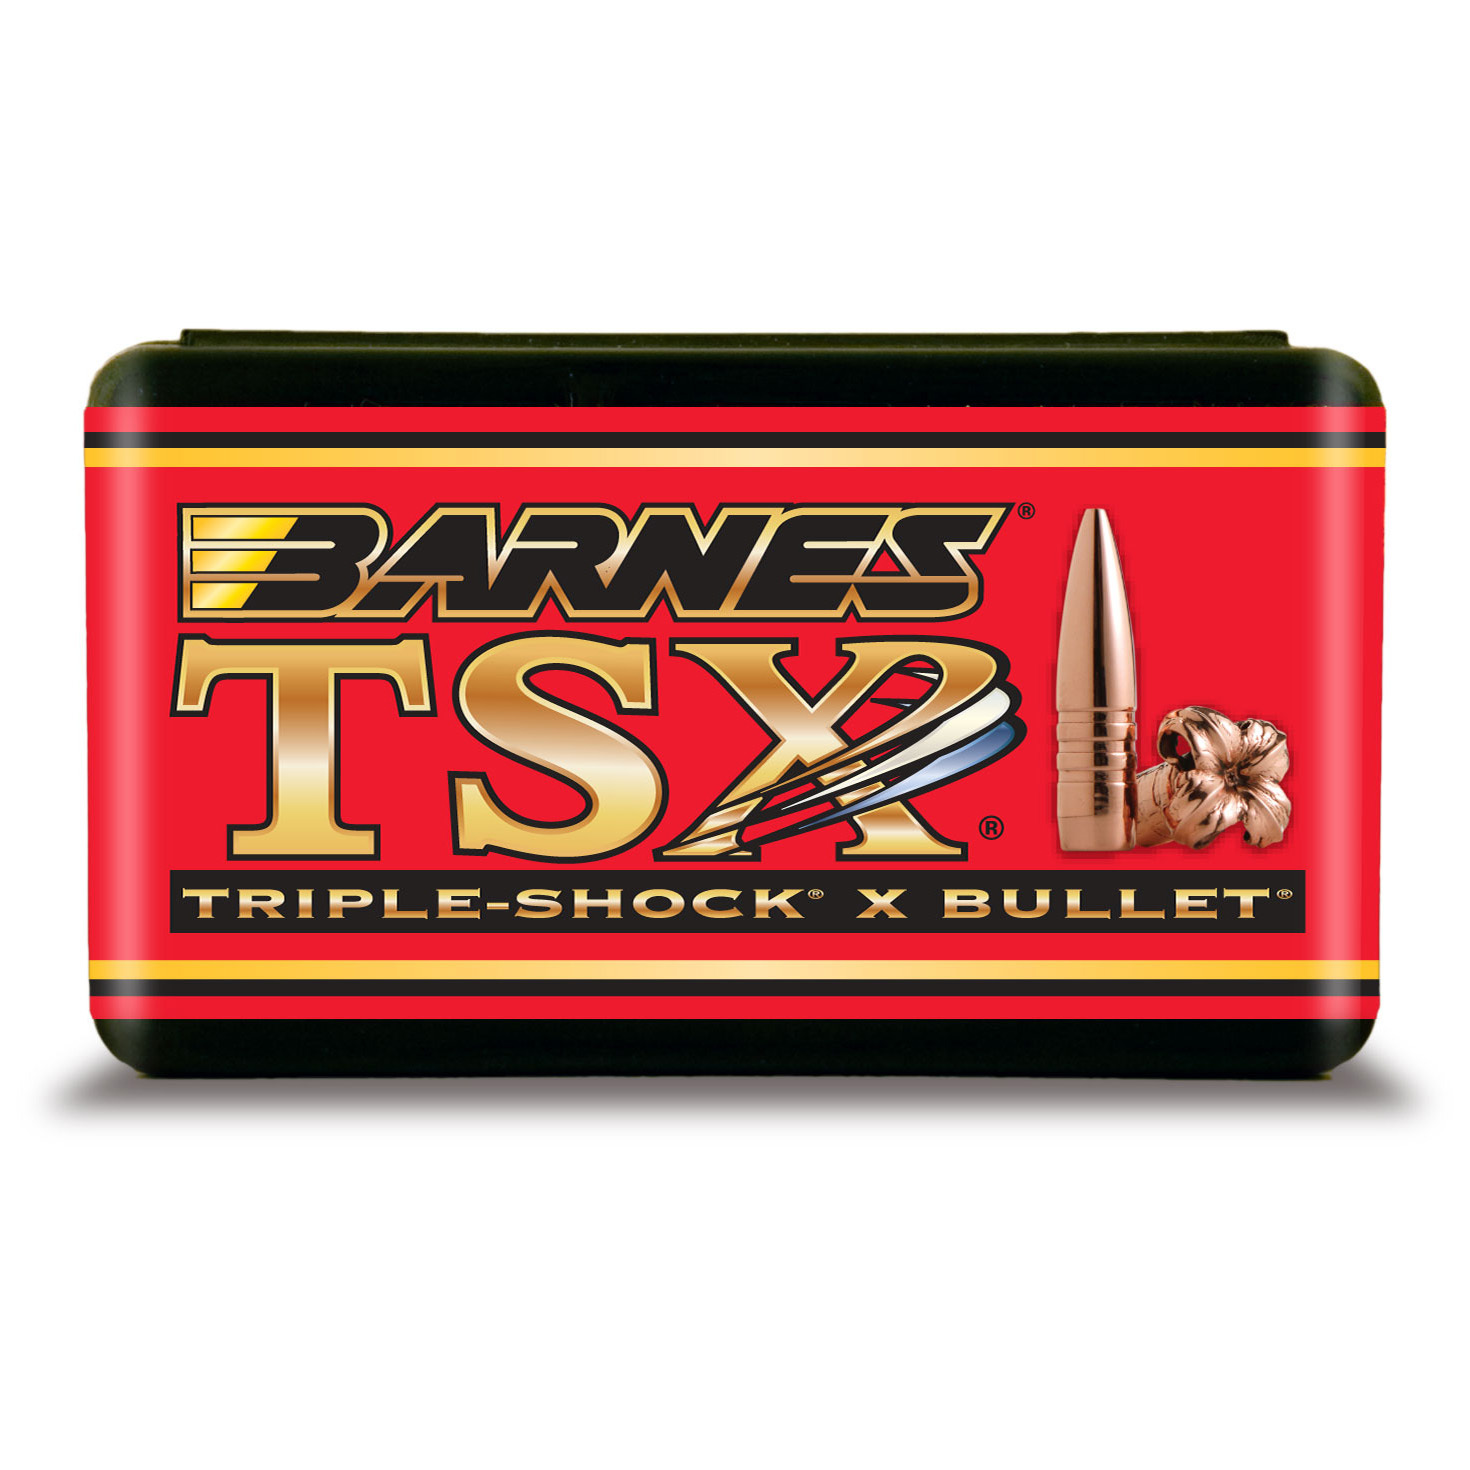 "50-Pk. Barnes .30 cal. 200-grain TSX FB Reloading Bullets. For dependable accuracy and takedown performance, ""X"" marks the spot. Barnes' most popular hunting Bullet! The TSX has gained worldwide recognition as one of the deadliest, most dependable all-copper Bullets you can buy. Try these and realize the added benefits of improved accuracy, reduced barrel fouling and increased velocity.Specs:Caliber: .30 Bullet diameter: .308"" Bullet weight: 200 grains Bullet length: 1.500"" Bullet style: Flat base Sectional density: .301 Ballistic coefficient: .423 Twist required: 1:10"" or faster. - $39.99"